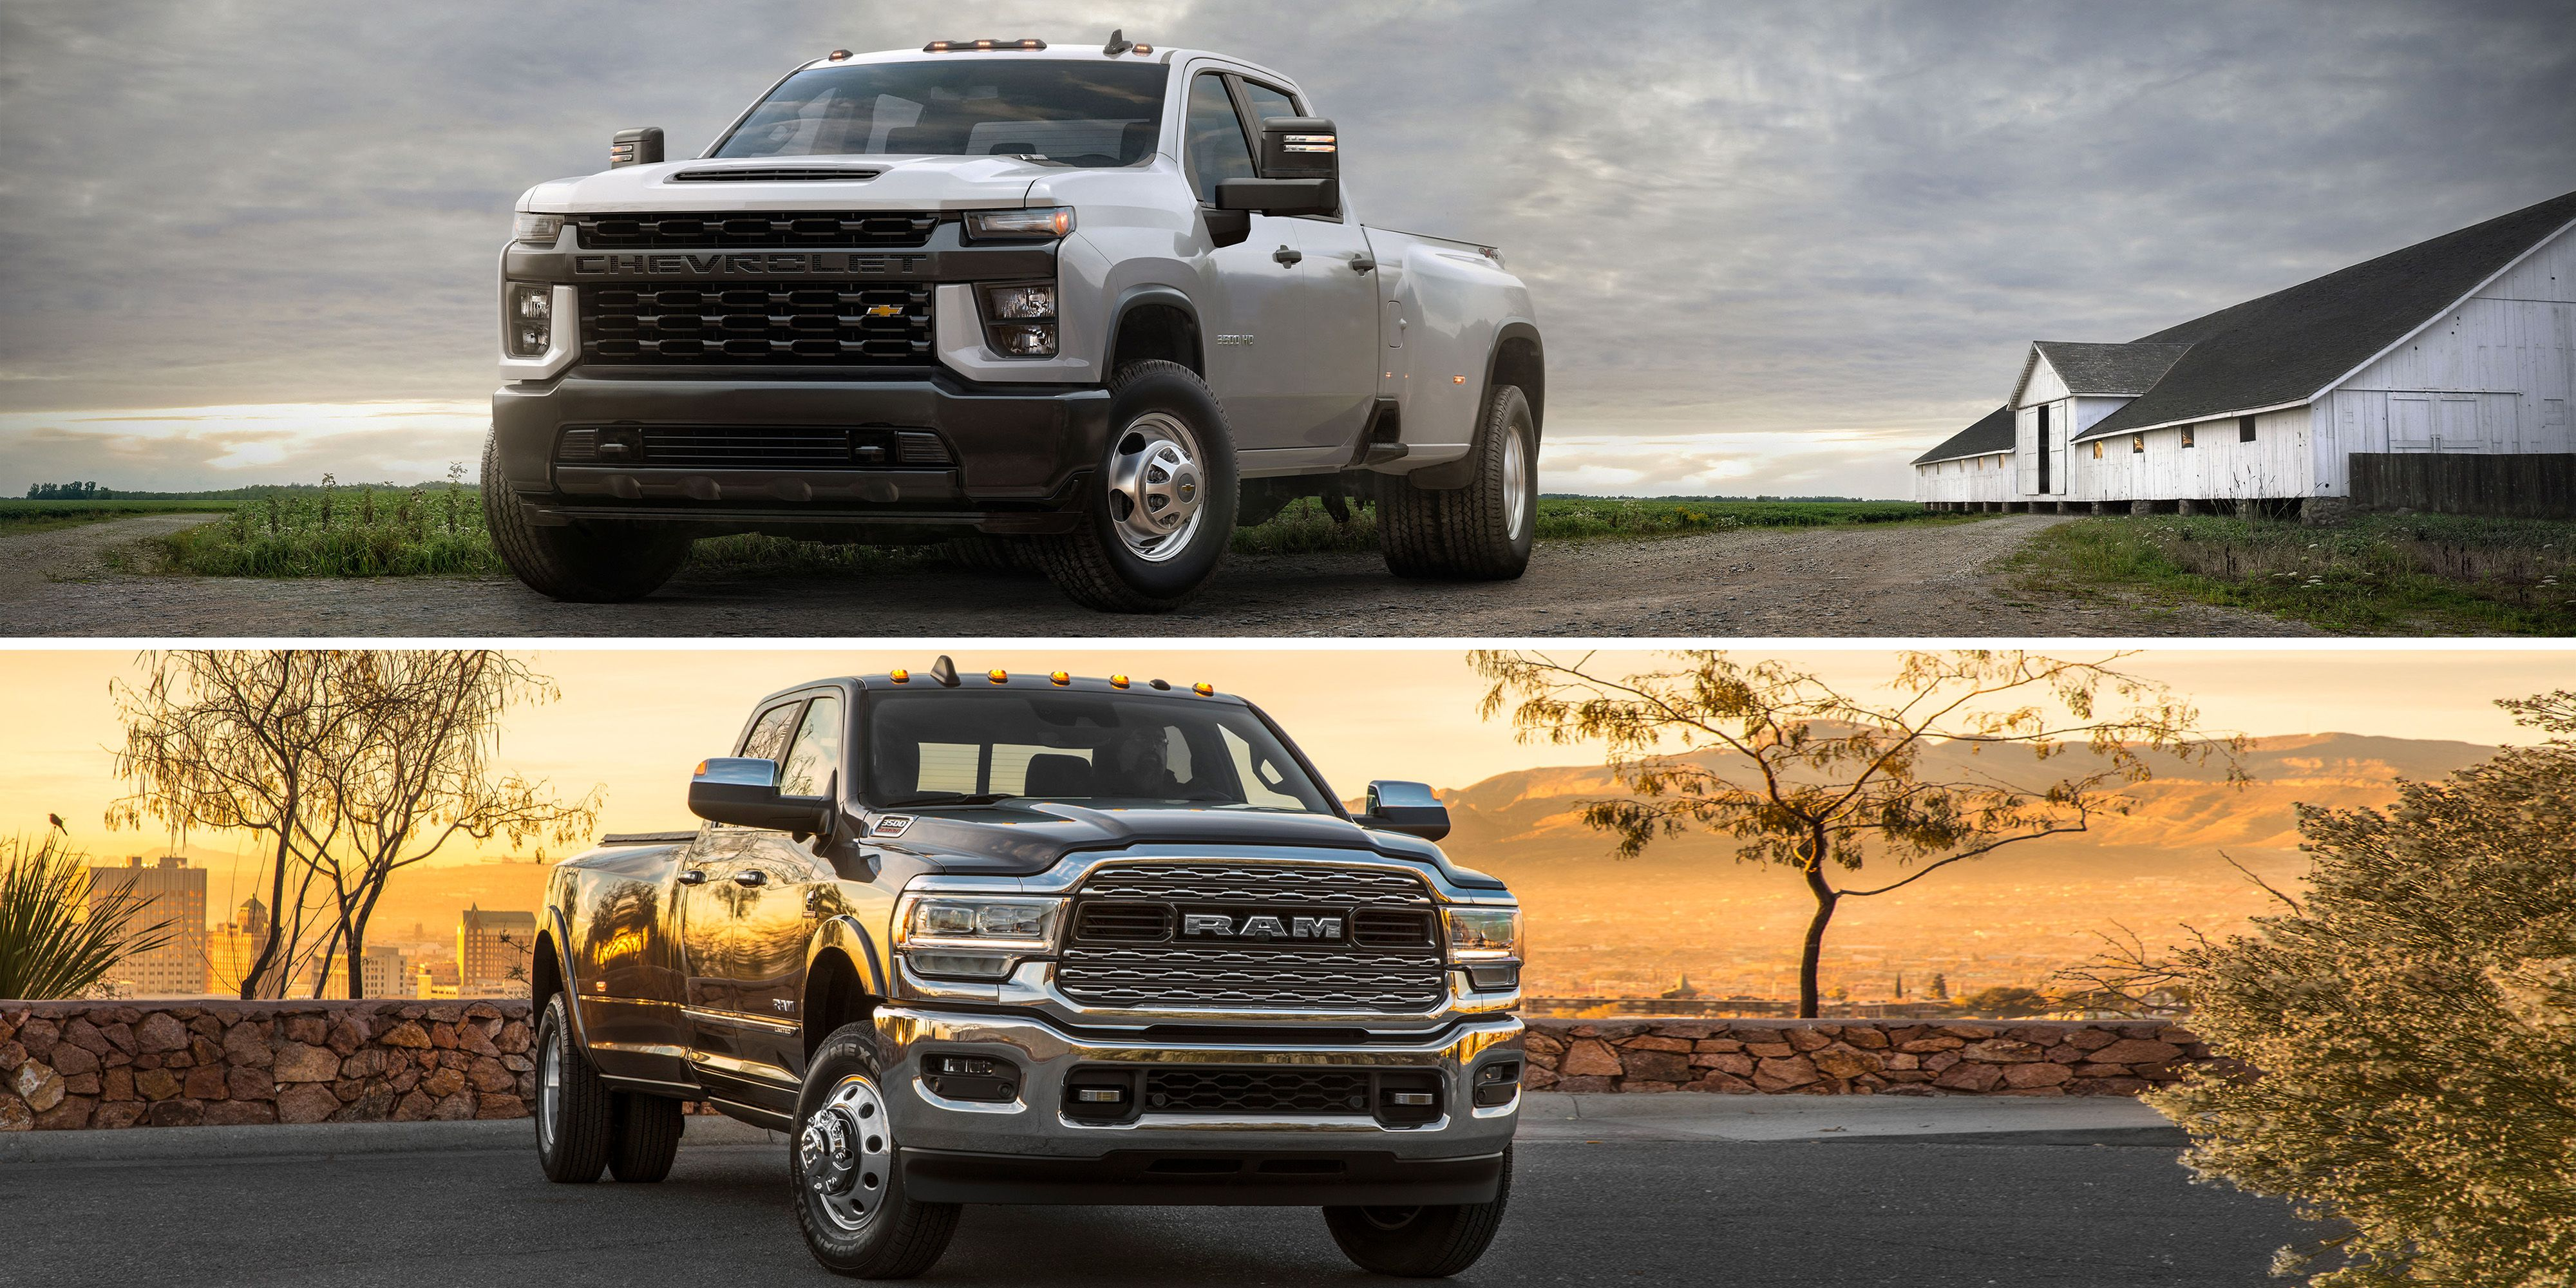 New Chevy Truck >> Chevy Claims Its New Silverado 3500 Accelerates Quicker Than The Ram